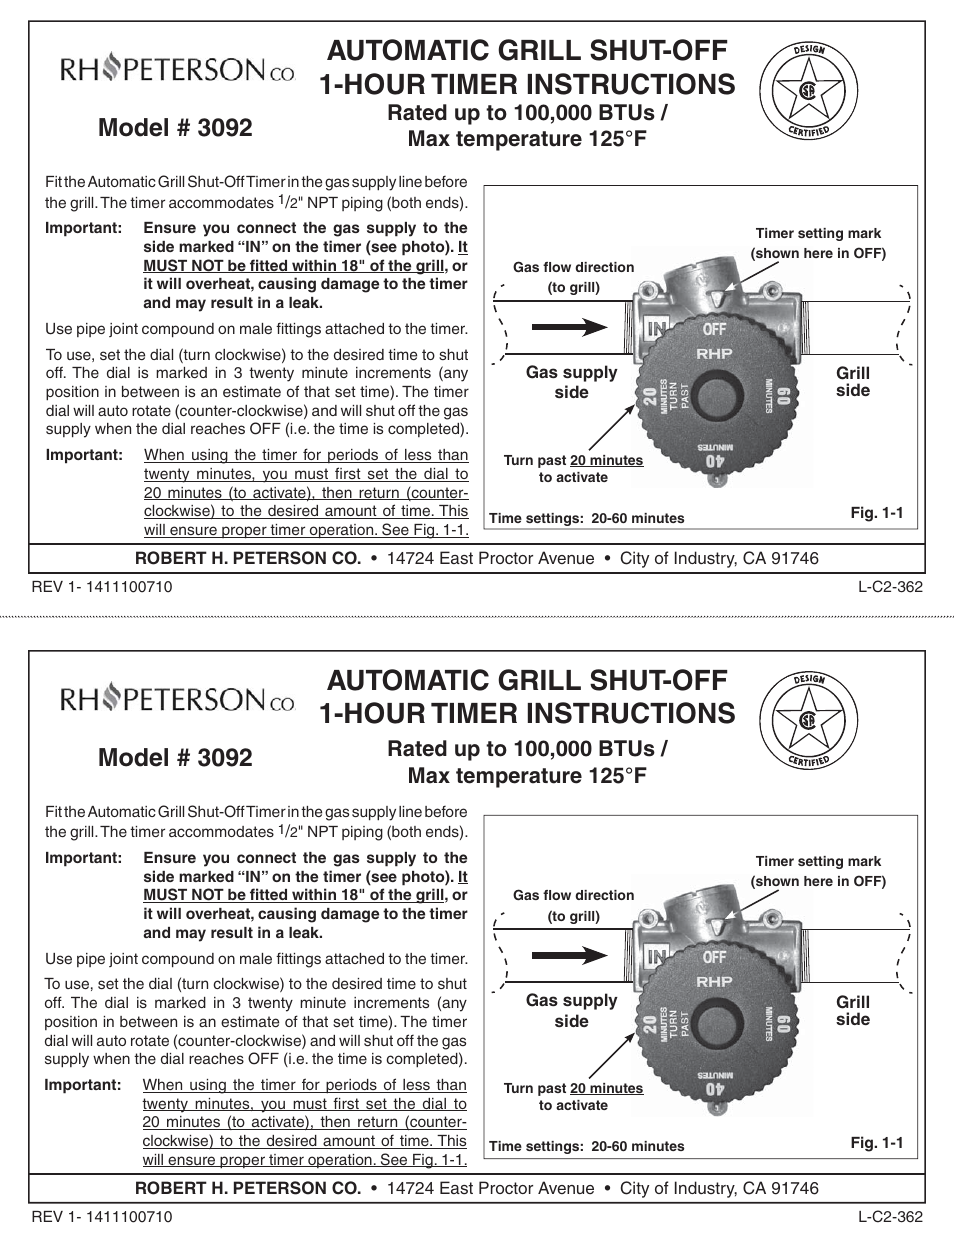 Fire Magic 3092 Auto Shut-off 1-Hour Timer User Manual | 1 page